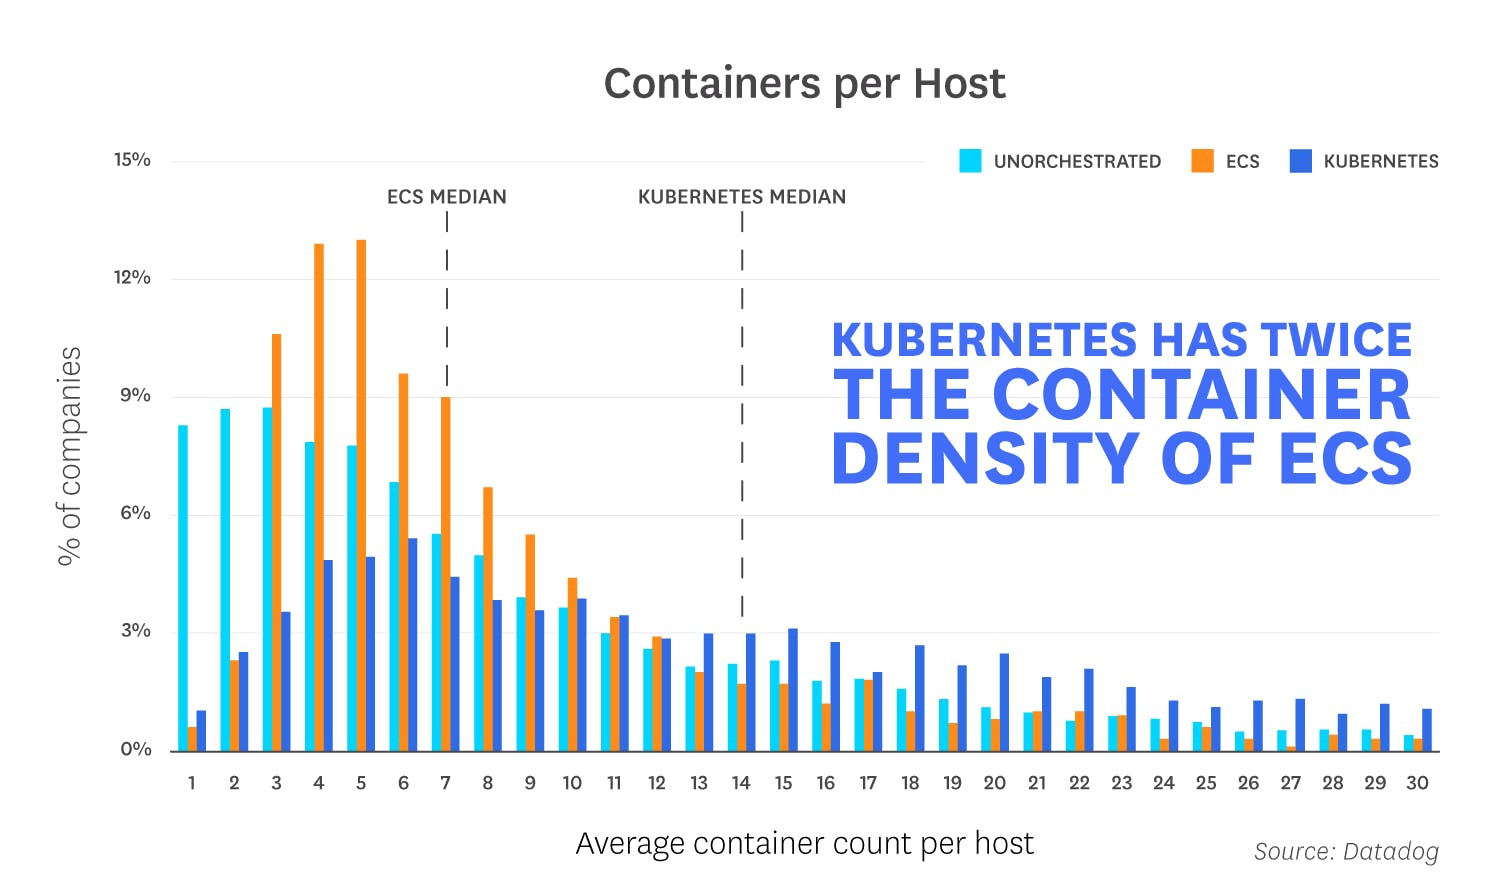 container-orchestration-2018/orchestration-2018-fact-8-v3